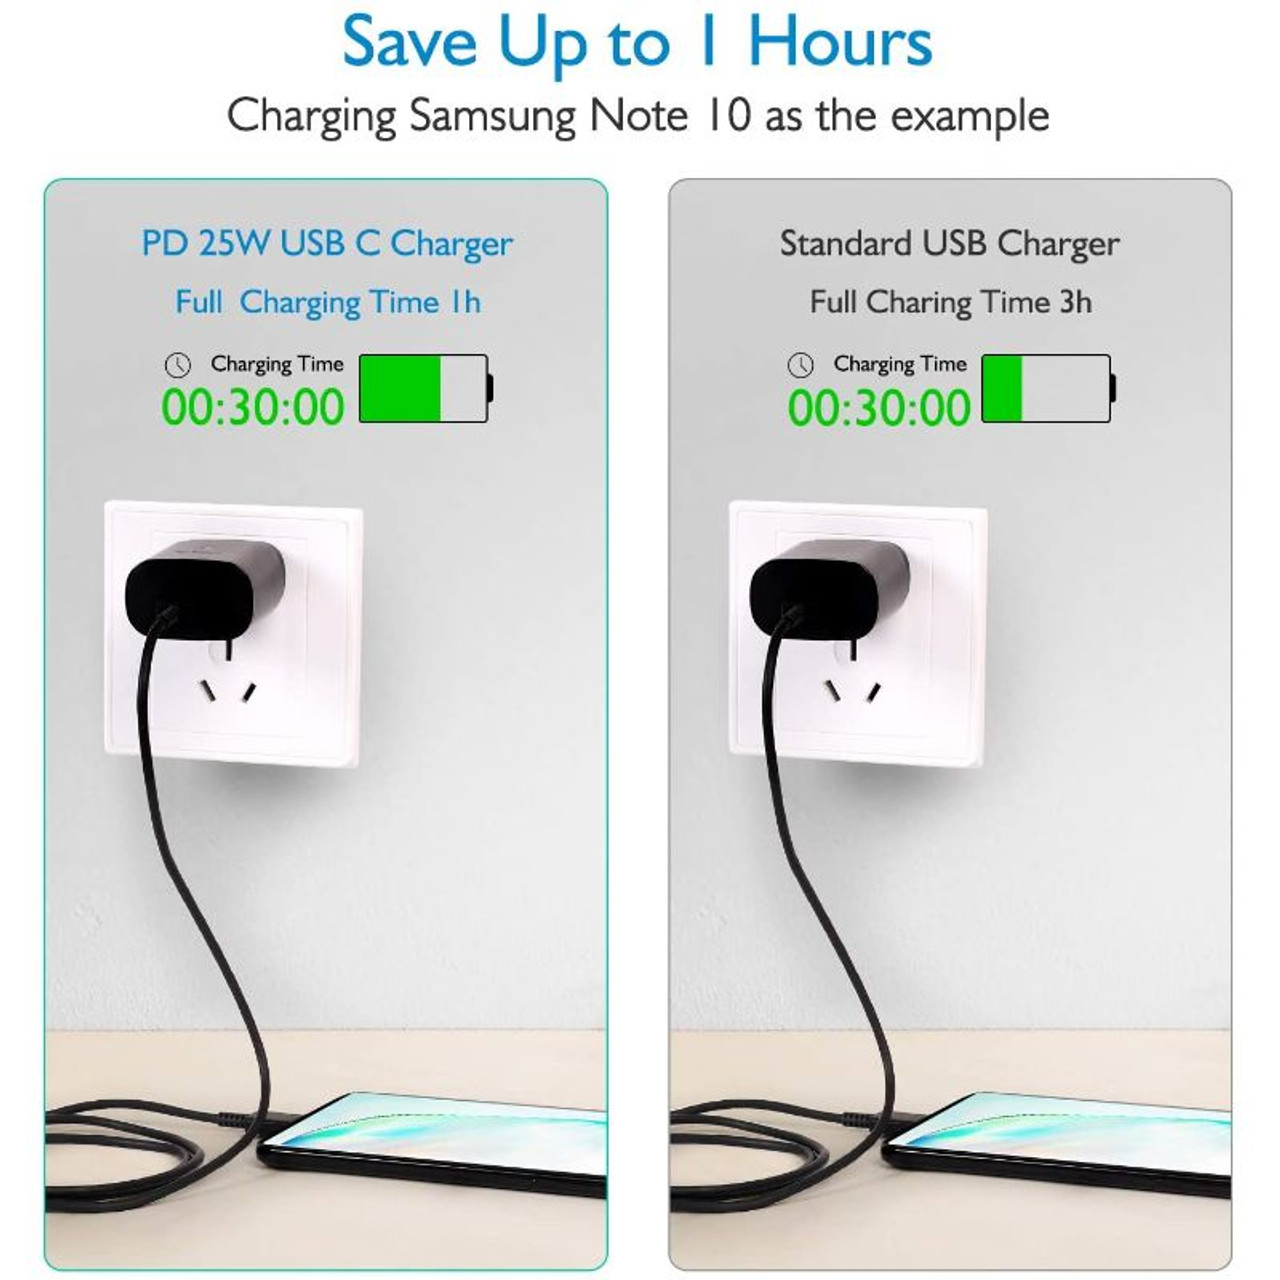 Samsung 25W USB C Super Fast Charging Wall Charger with USB C to C Cable - 1 or 2 Pack